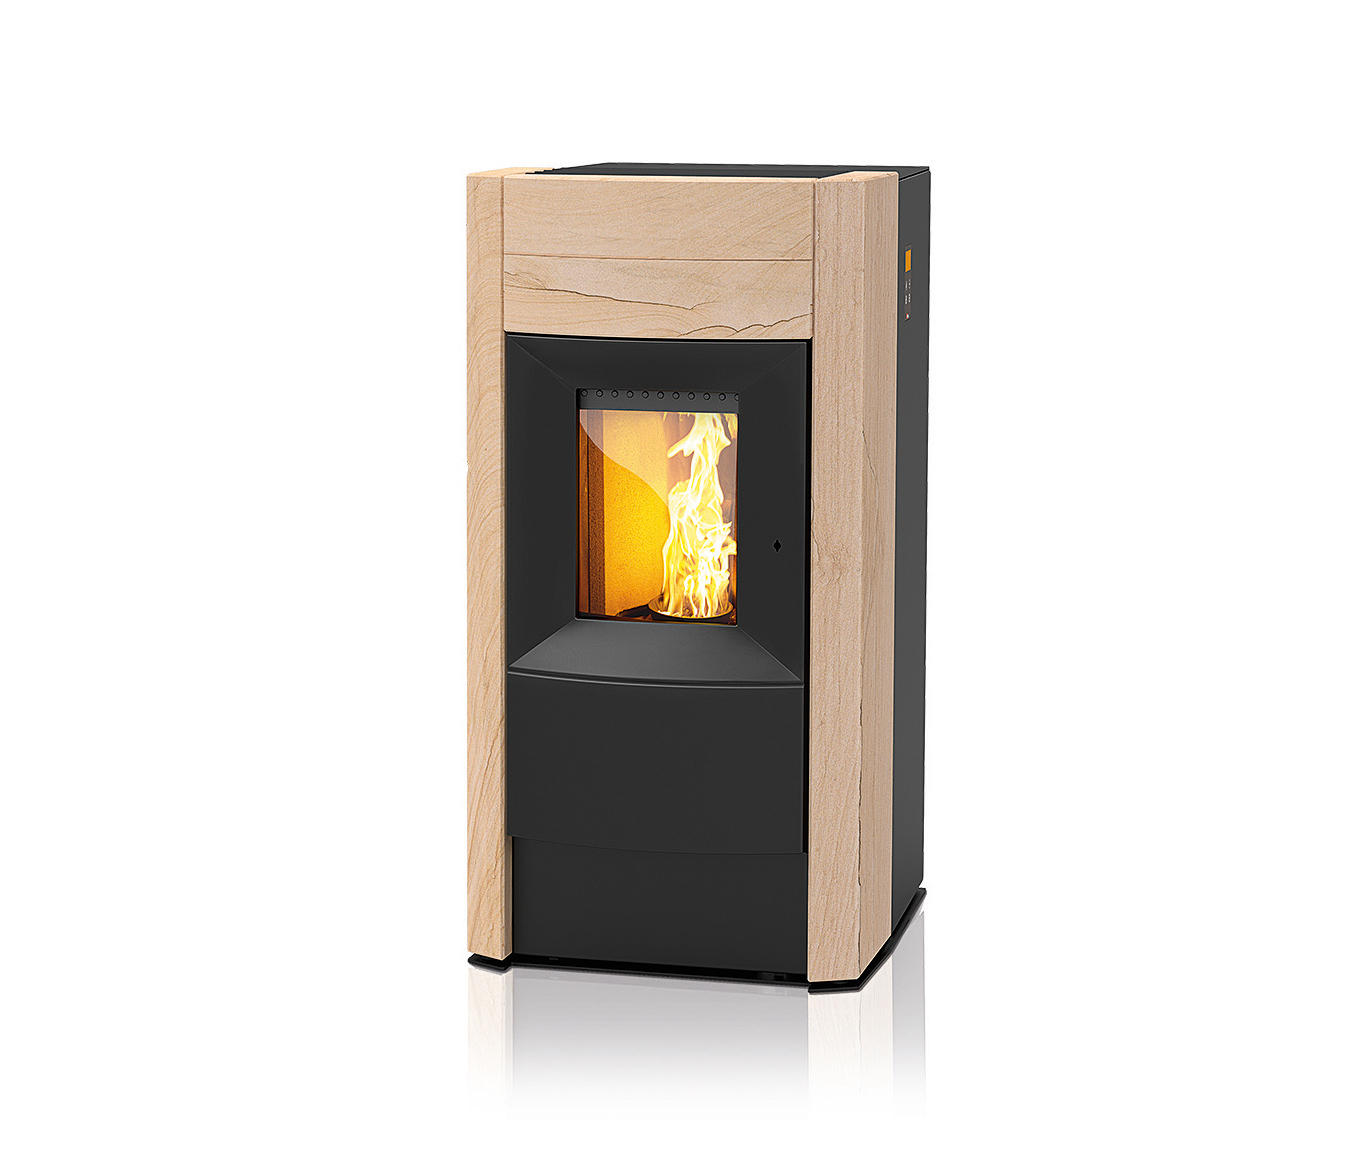 REVO | WITH SANDSTONE CASING - Stoves from Rika | Architonic